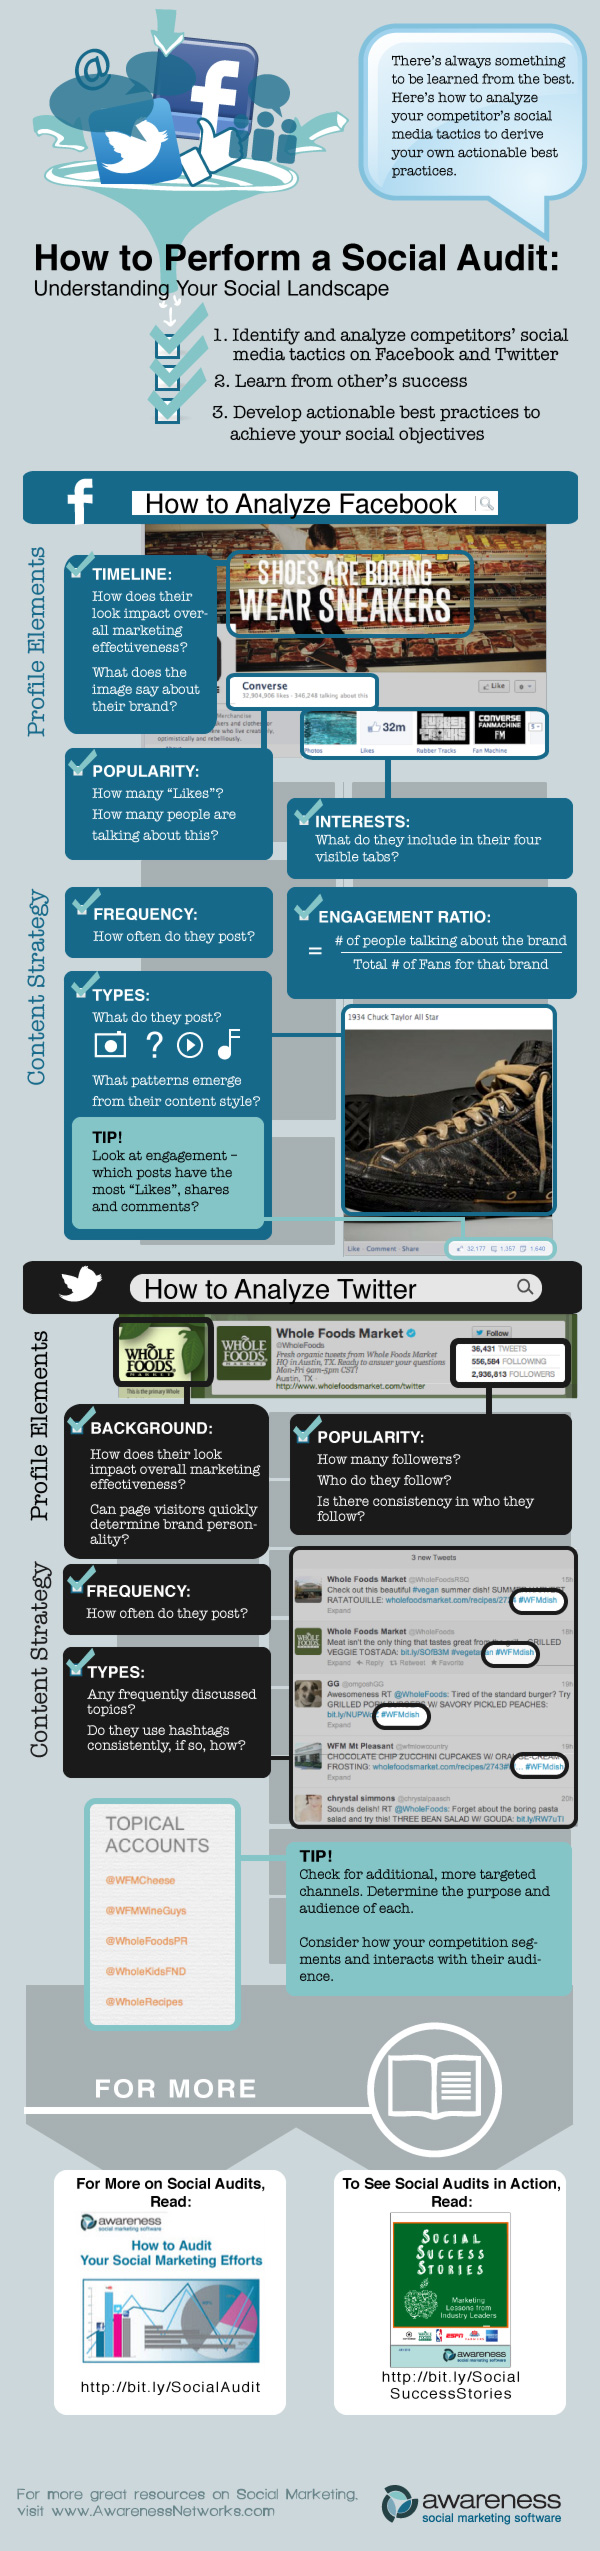 social-audits-infographic-final